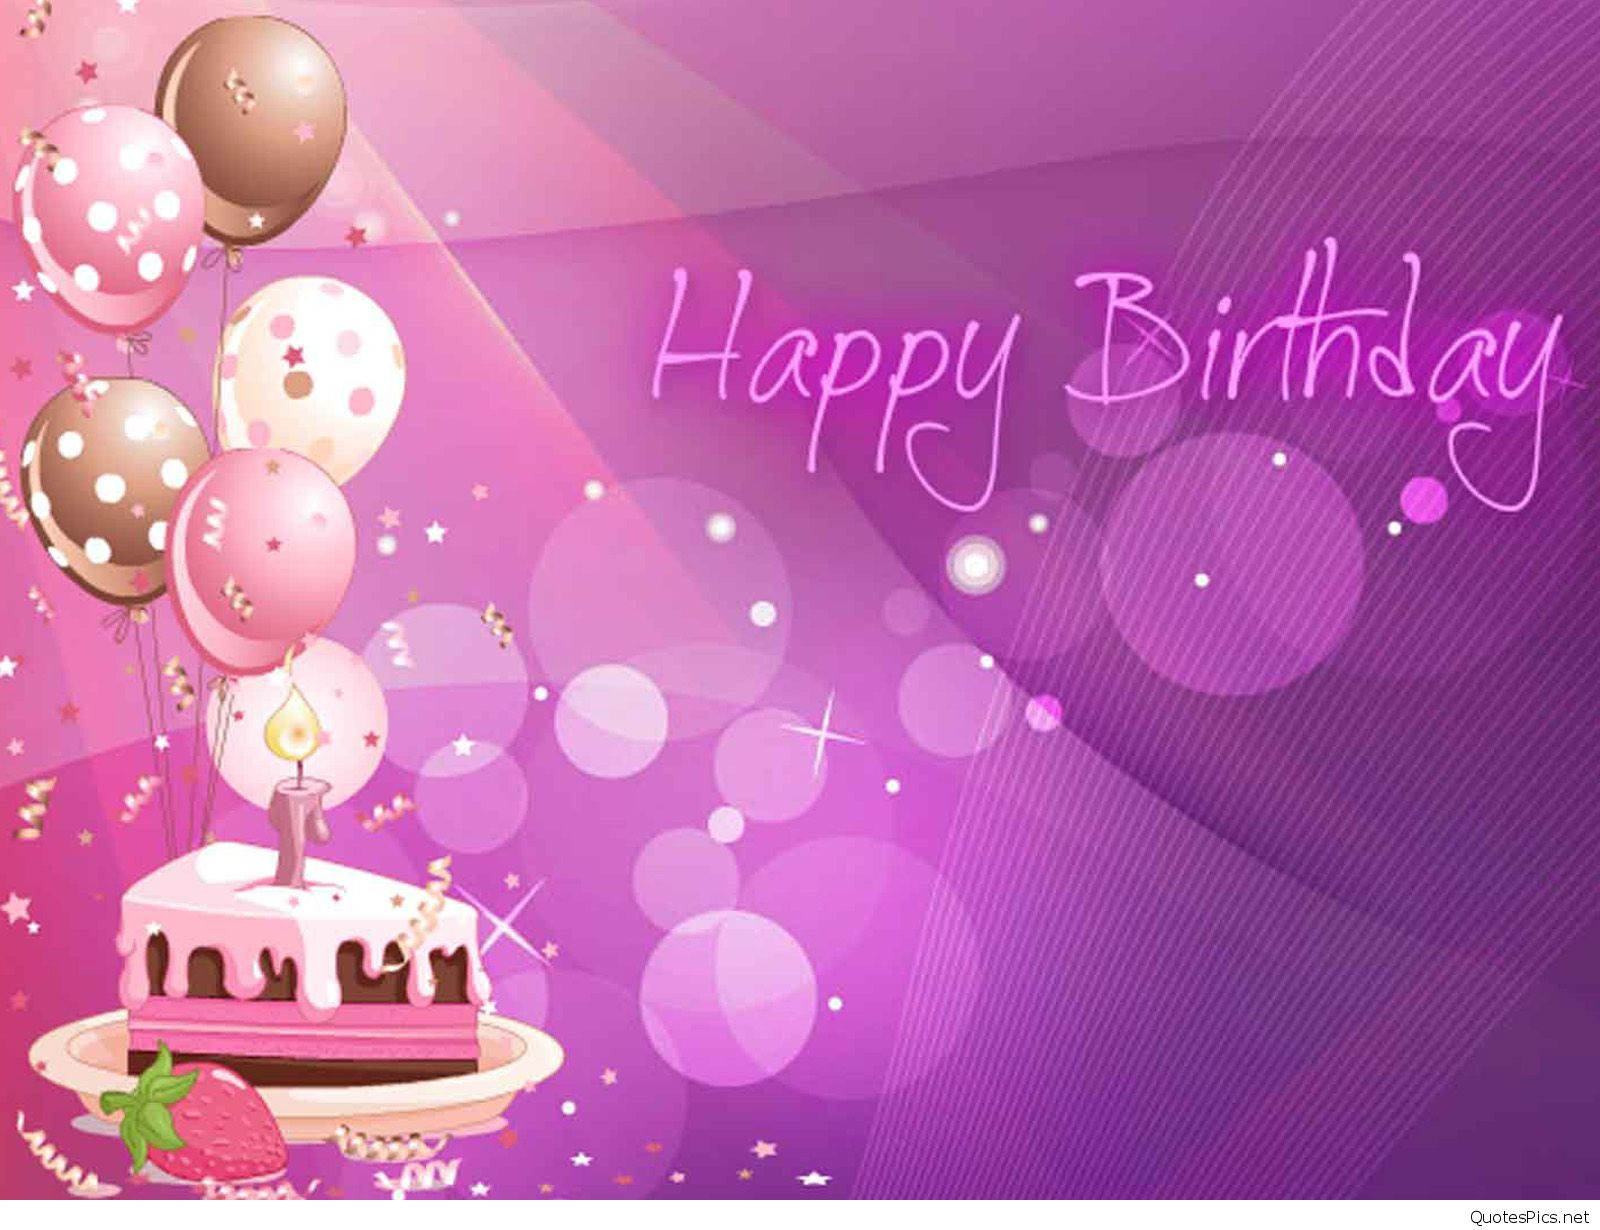 birthday card hd ; Happy-birthday-wishes-hd-wallpapers